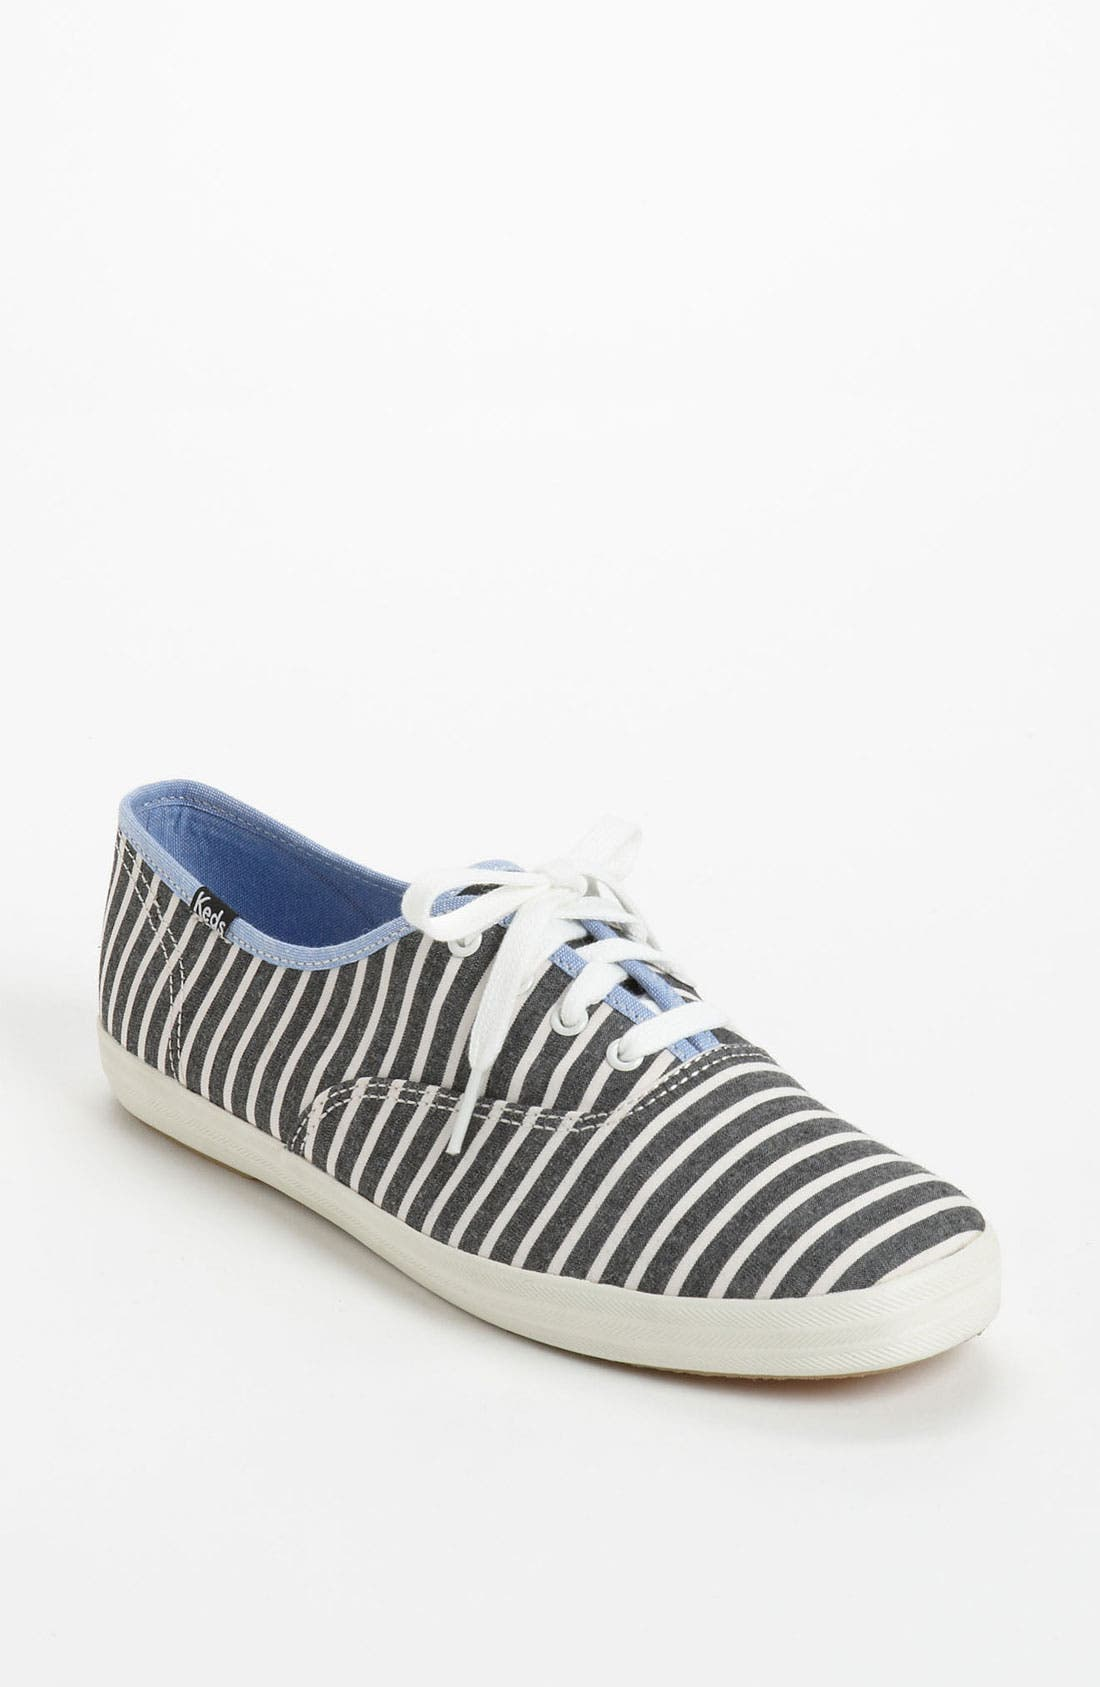 Alternate Image 1 Selected - Keds® 'Champion Prep Stripe' Sneaker (Women)